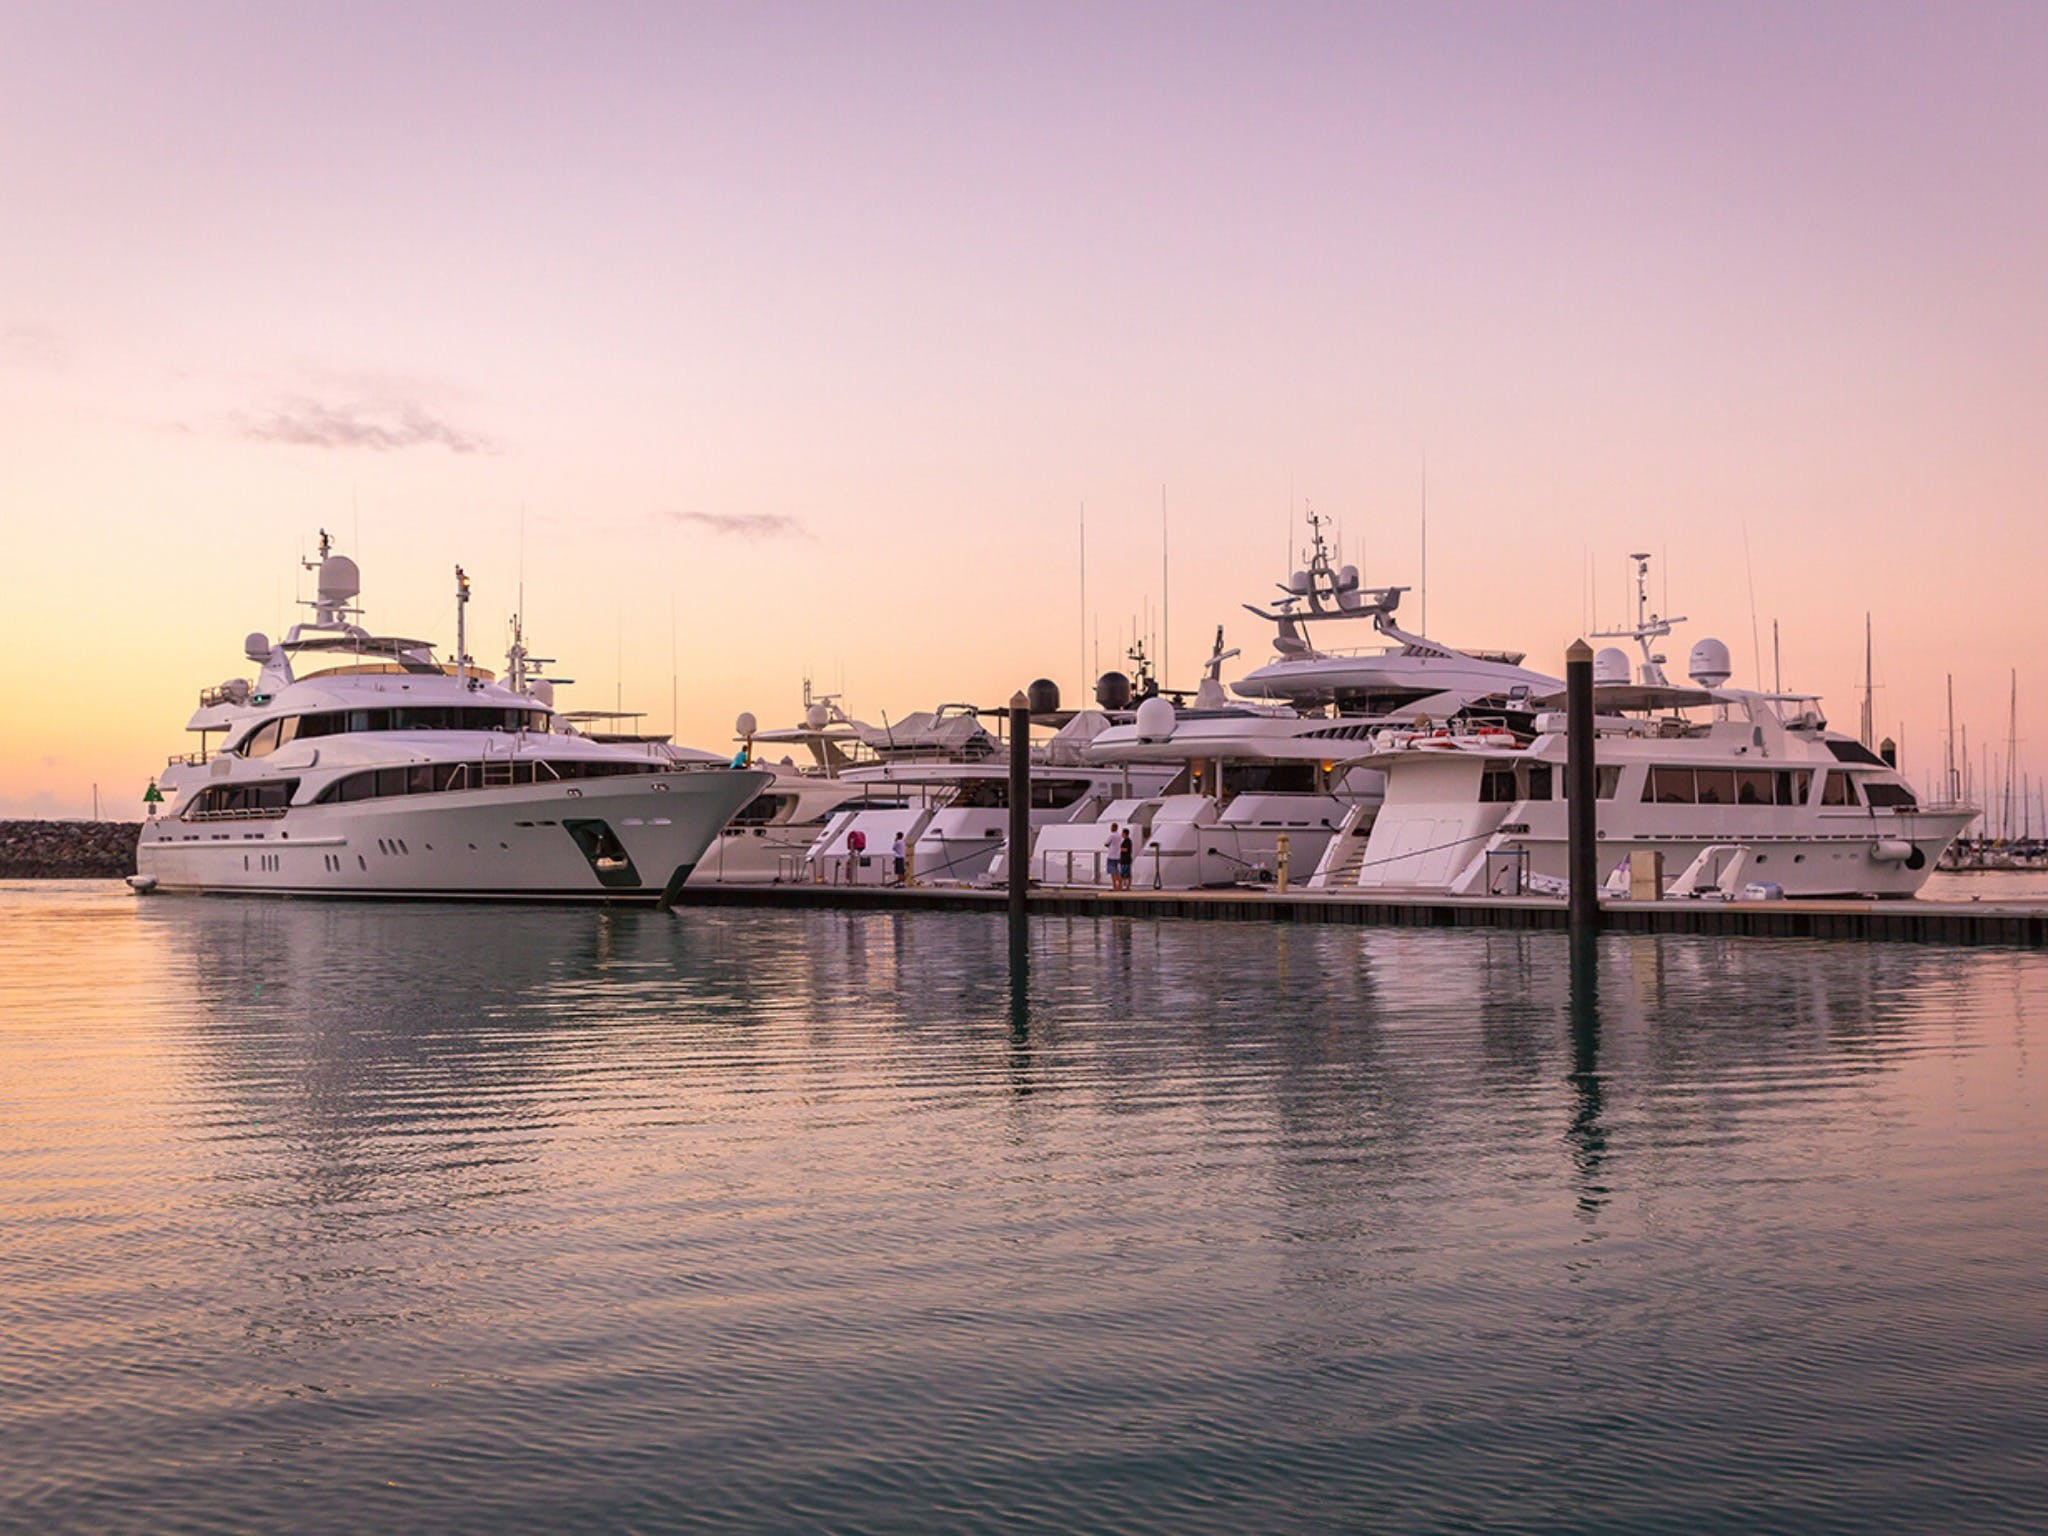 Australian Superyacht Rendezvous - Great Barrier Reef edition - Accommodation Sunshine Coast